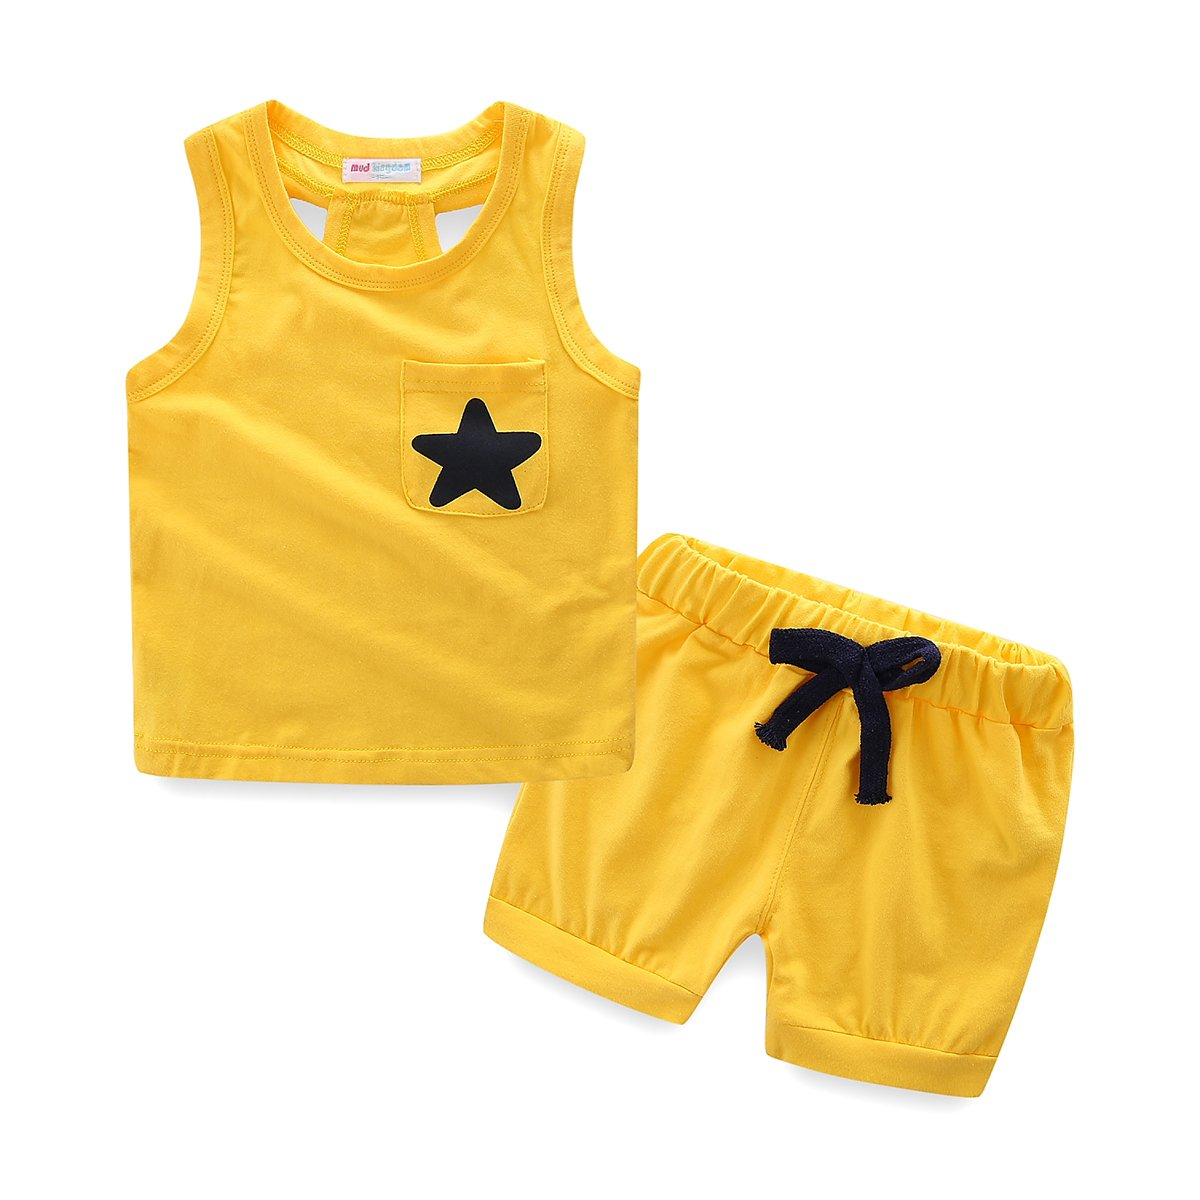 Mud Kingdom Little Boys Summer Clothes Sets Cute Tank Tops Shorts Outfits Star 3T Yellow